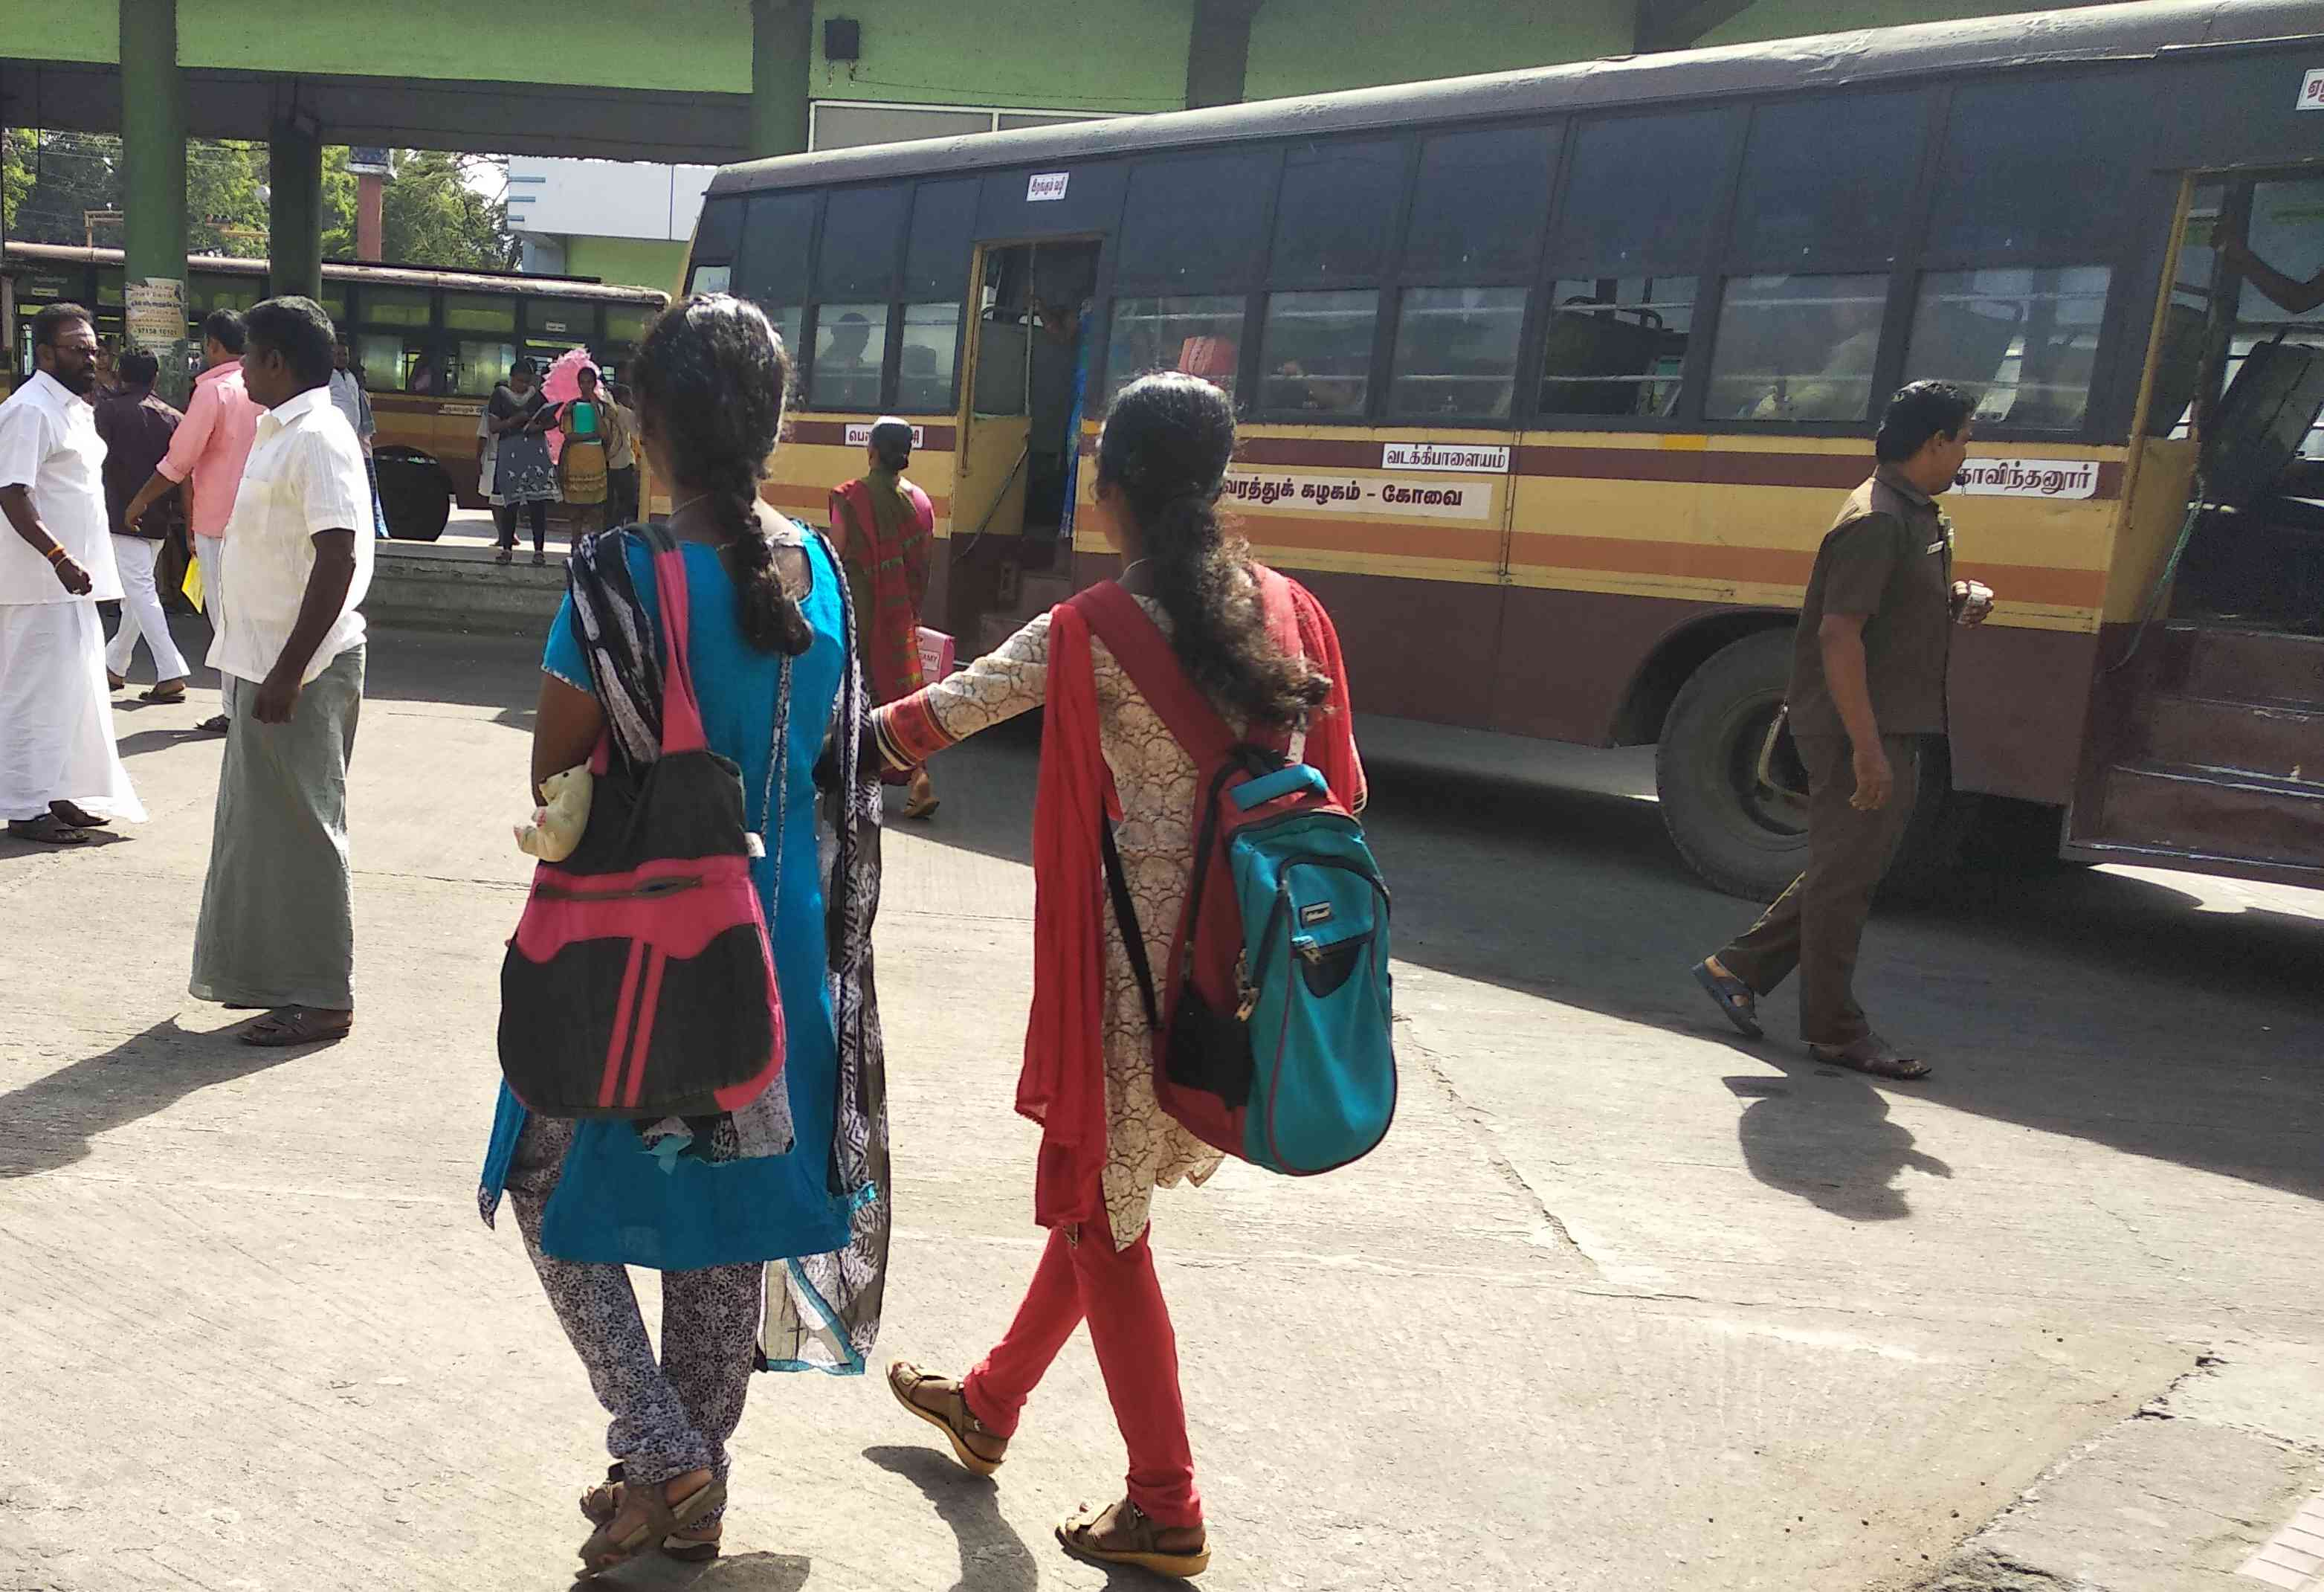 Students walk towards the bus stand after Pollachi's colleges declared a holiday on March 14. Photo credit: S Senthalir